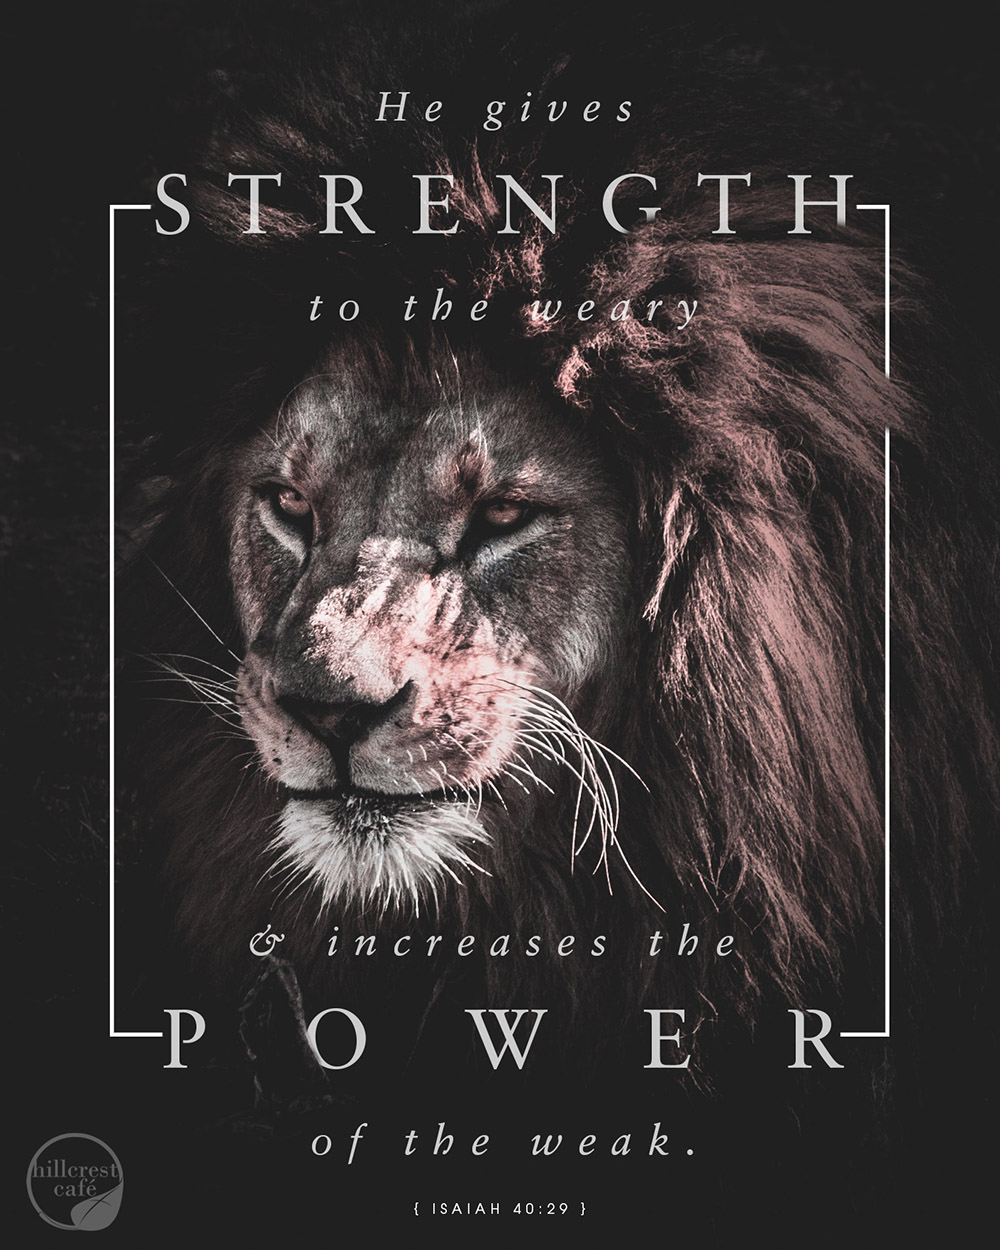 Poster of a lion. Isaiah 40:29